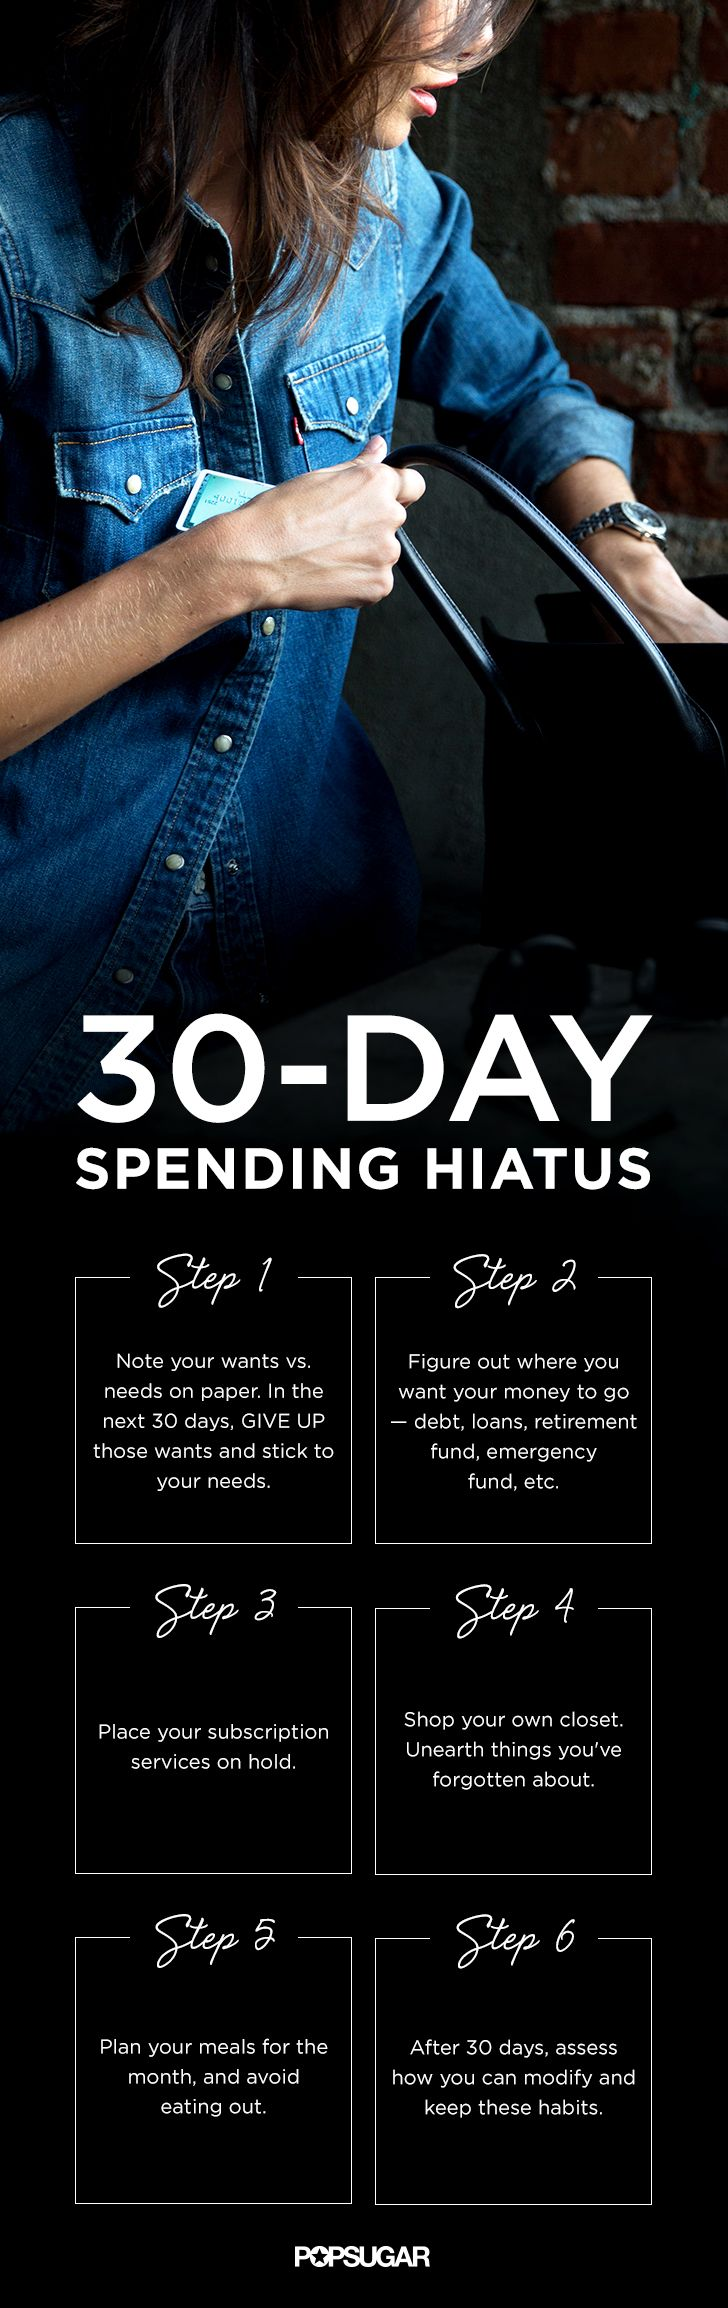 Take Charge of Your Bank Account With the 30-Day Spending Hiatus. Great tips if you're trying to cut back on how much you spend!